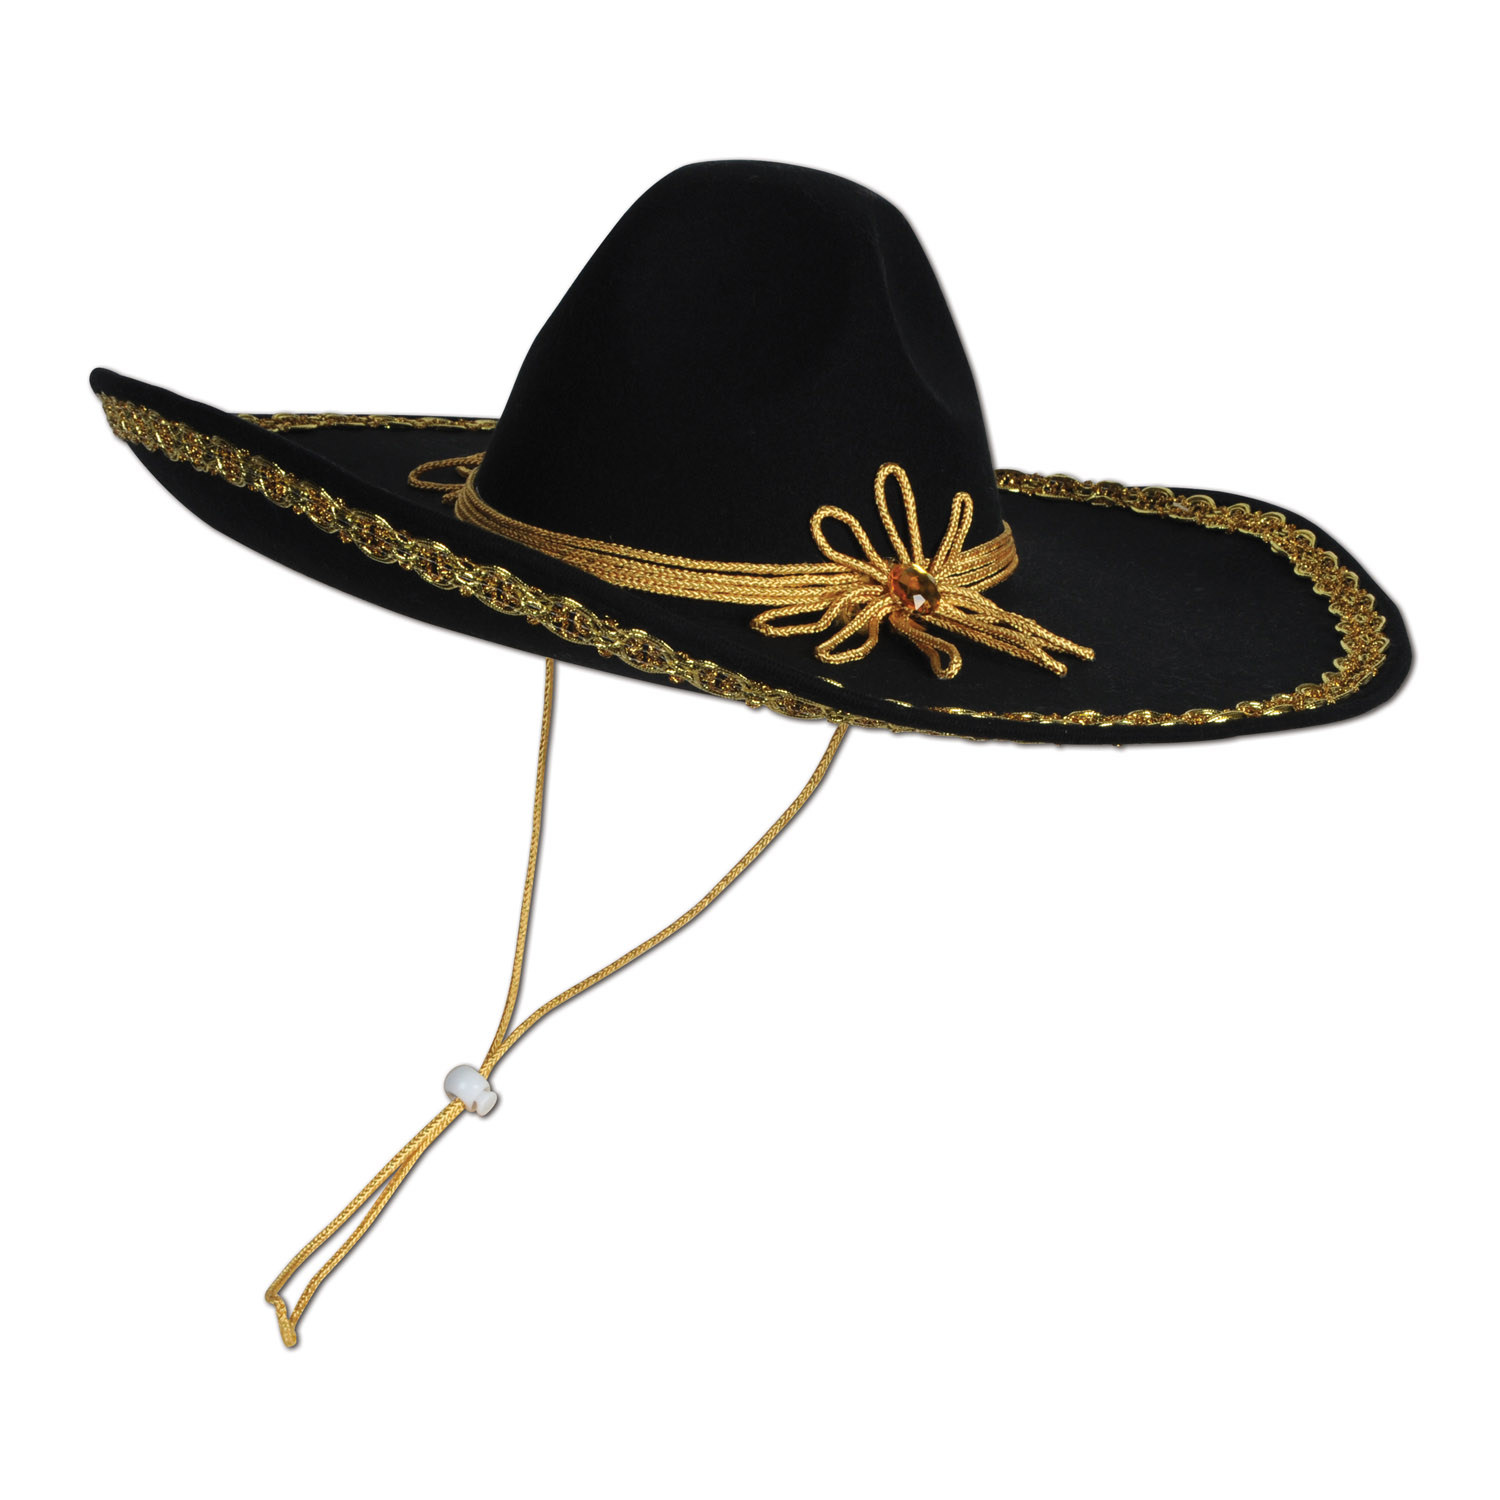 Felt Sombrero (Pack of 6) Felt Sombrero, party favor, cinco de mayo, decoration, wholesale, inexpensive, bulk